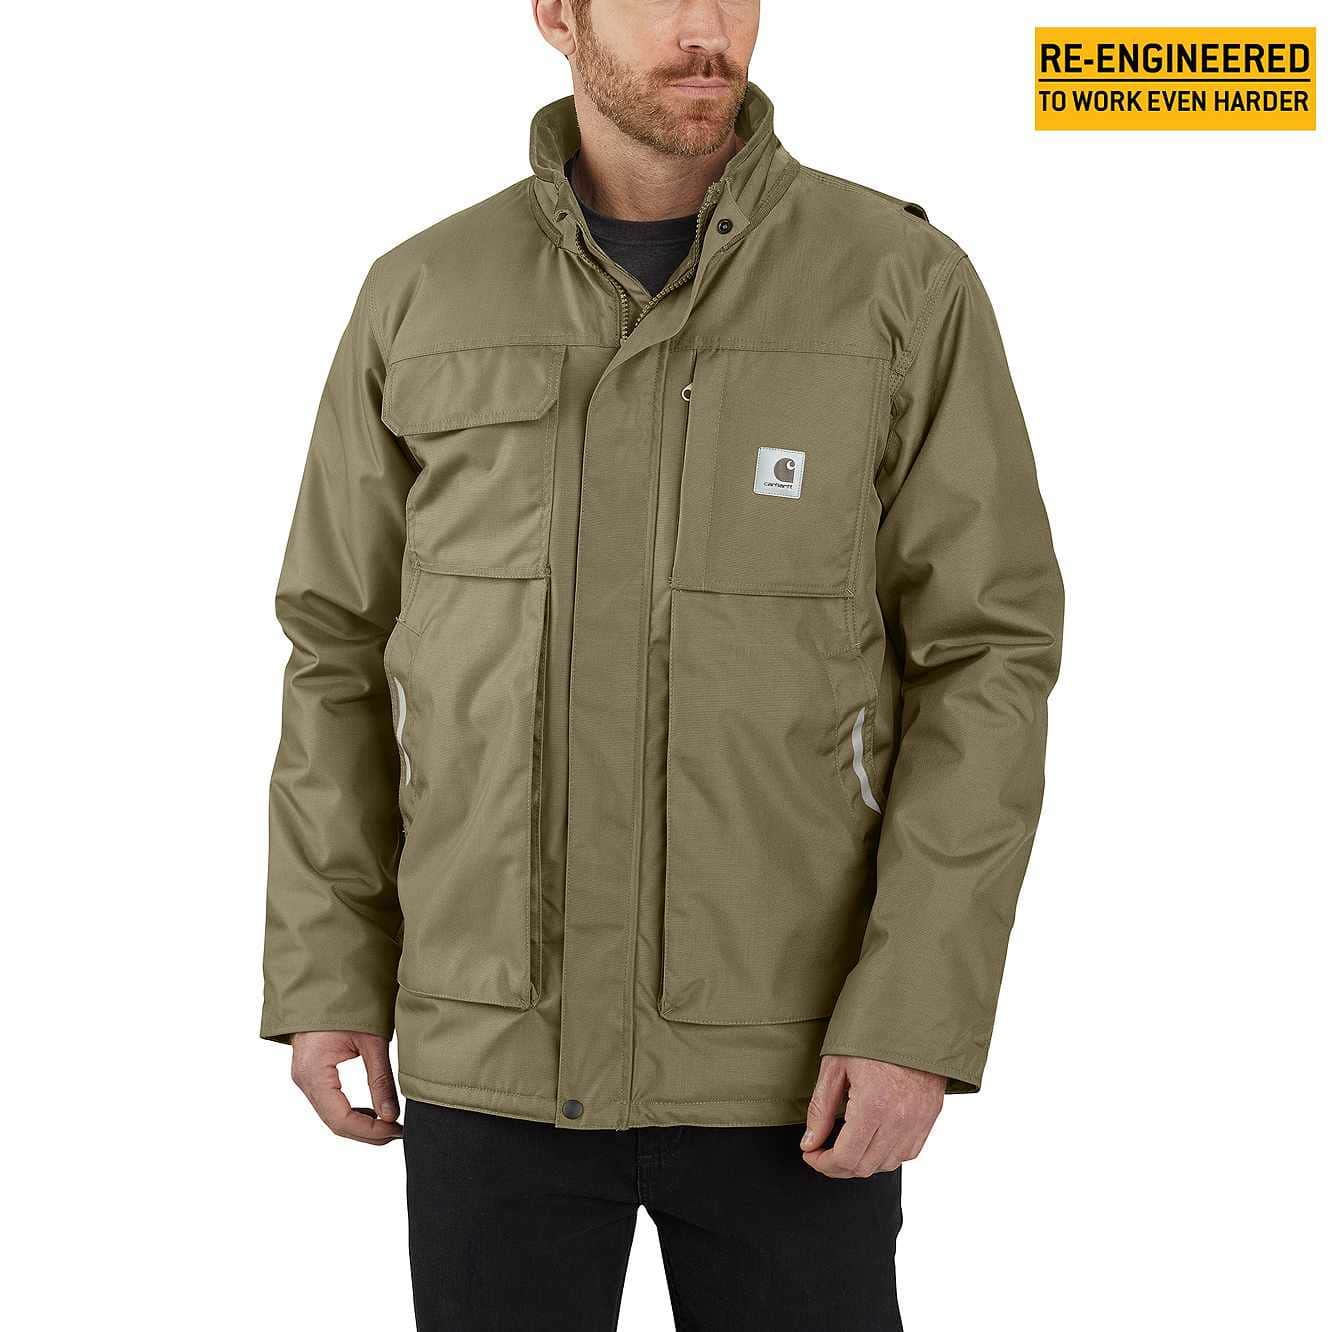 Picture of Carhartt® Yukon Extremes® Full Swing® Insulated Coat in Burnt Olive